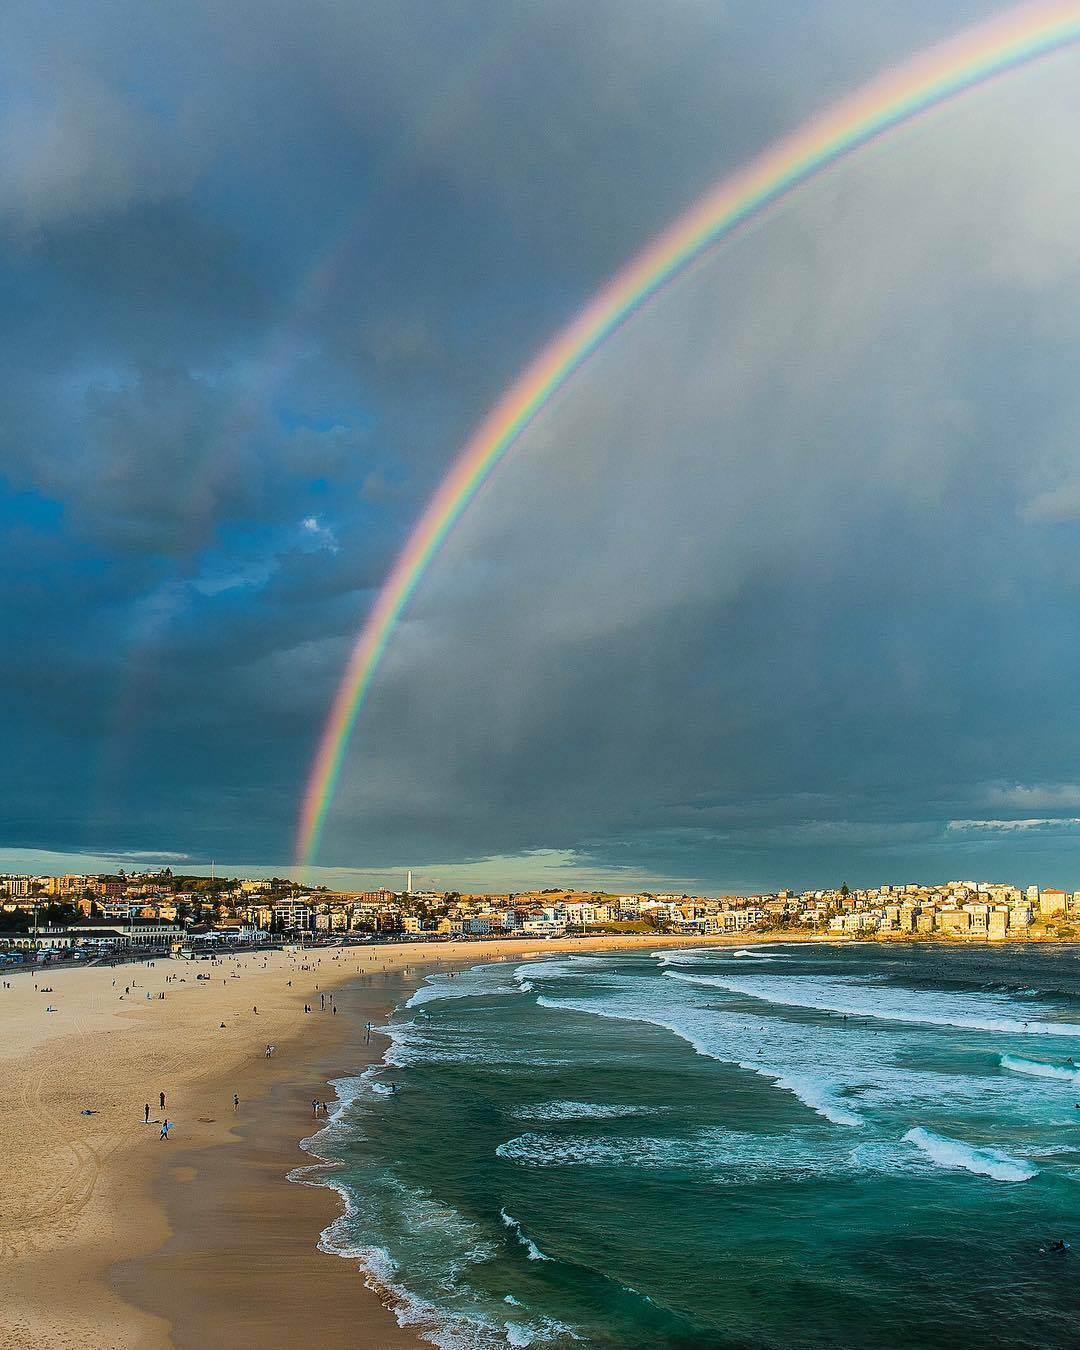 I was on my way to capture the sunset when I saw this stunning rainbow draped perfectly over Bondi Beach. Hastily made my way to the Bondi Icebergs to get the shot, and made it with just two minutes to spare!  Shot on: Canon EOS 5D Mark III and Canon EF 24mm f/1.4 L USM II lens